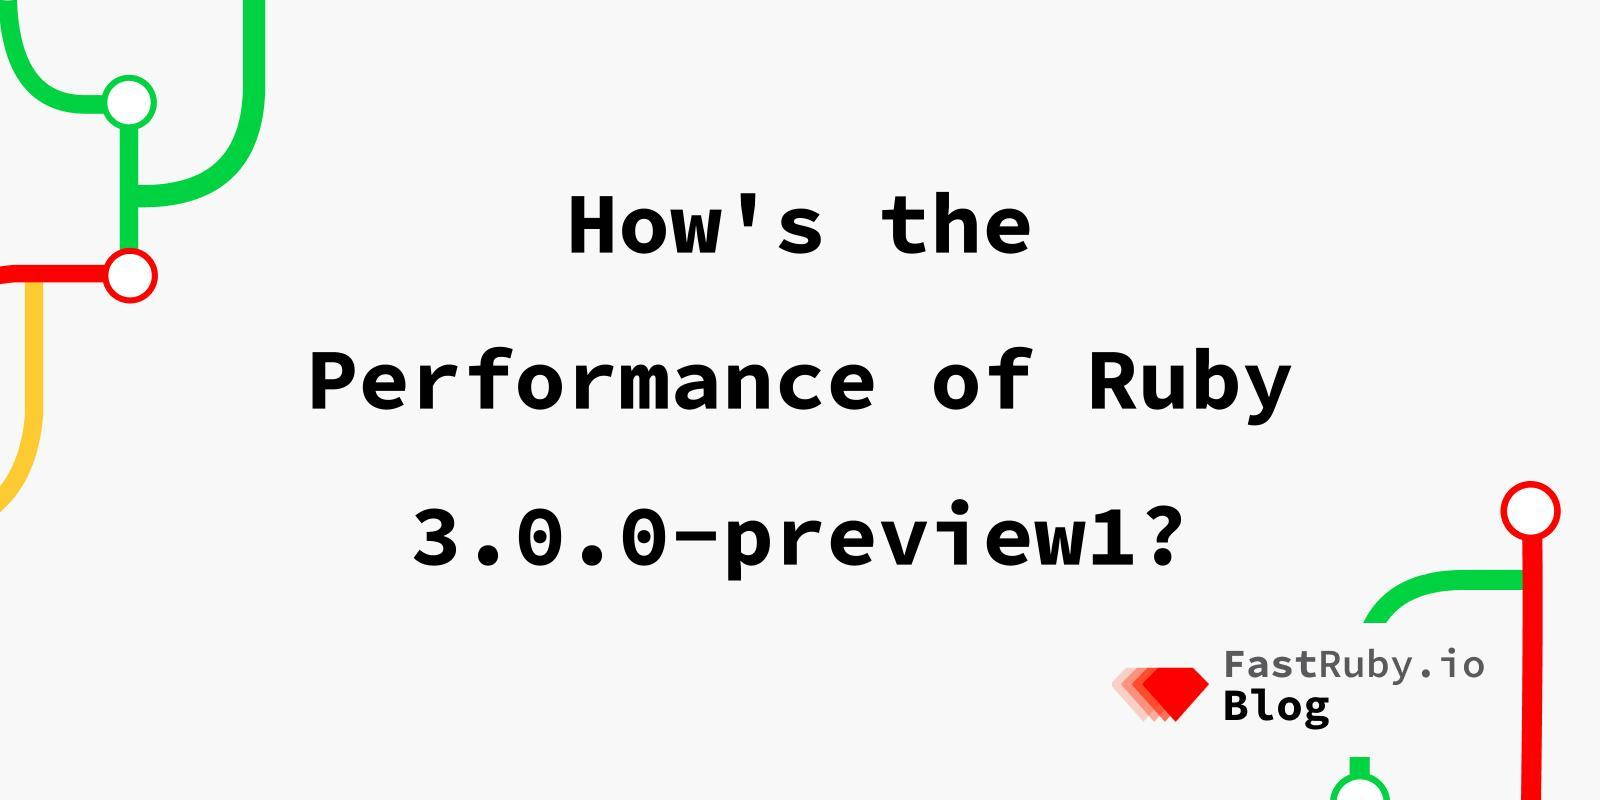 How's the Performance of Ruby 3.0.0-preview1?